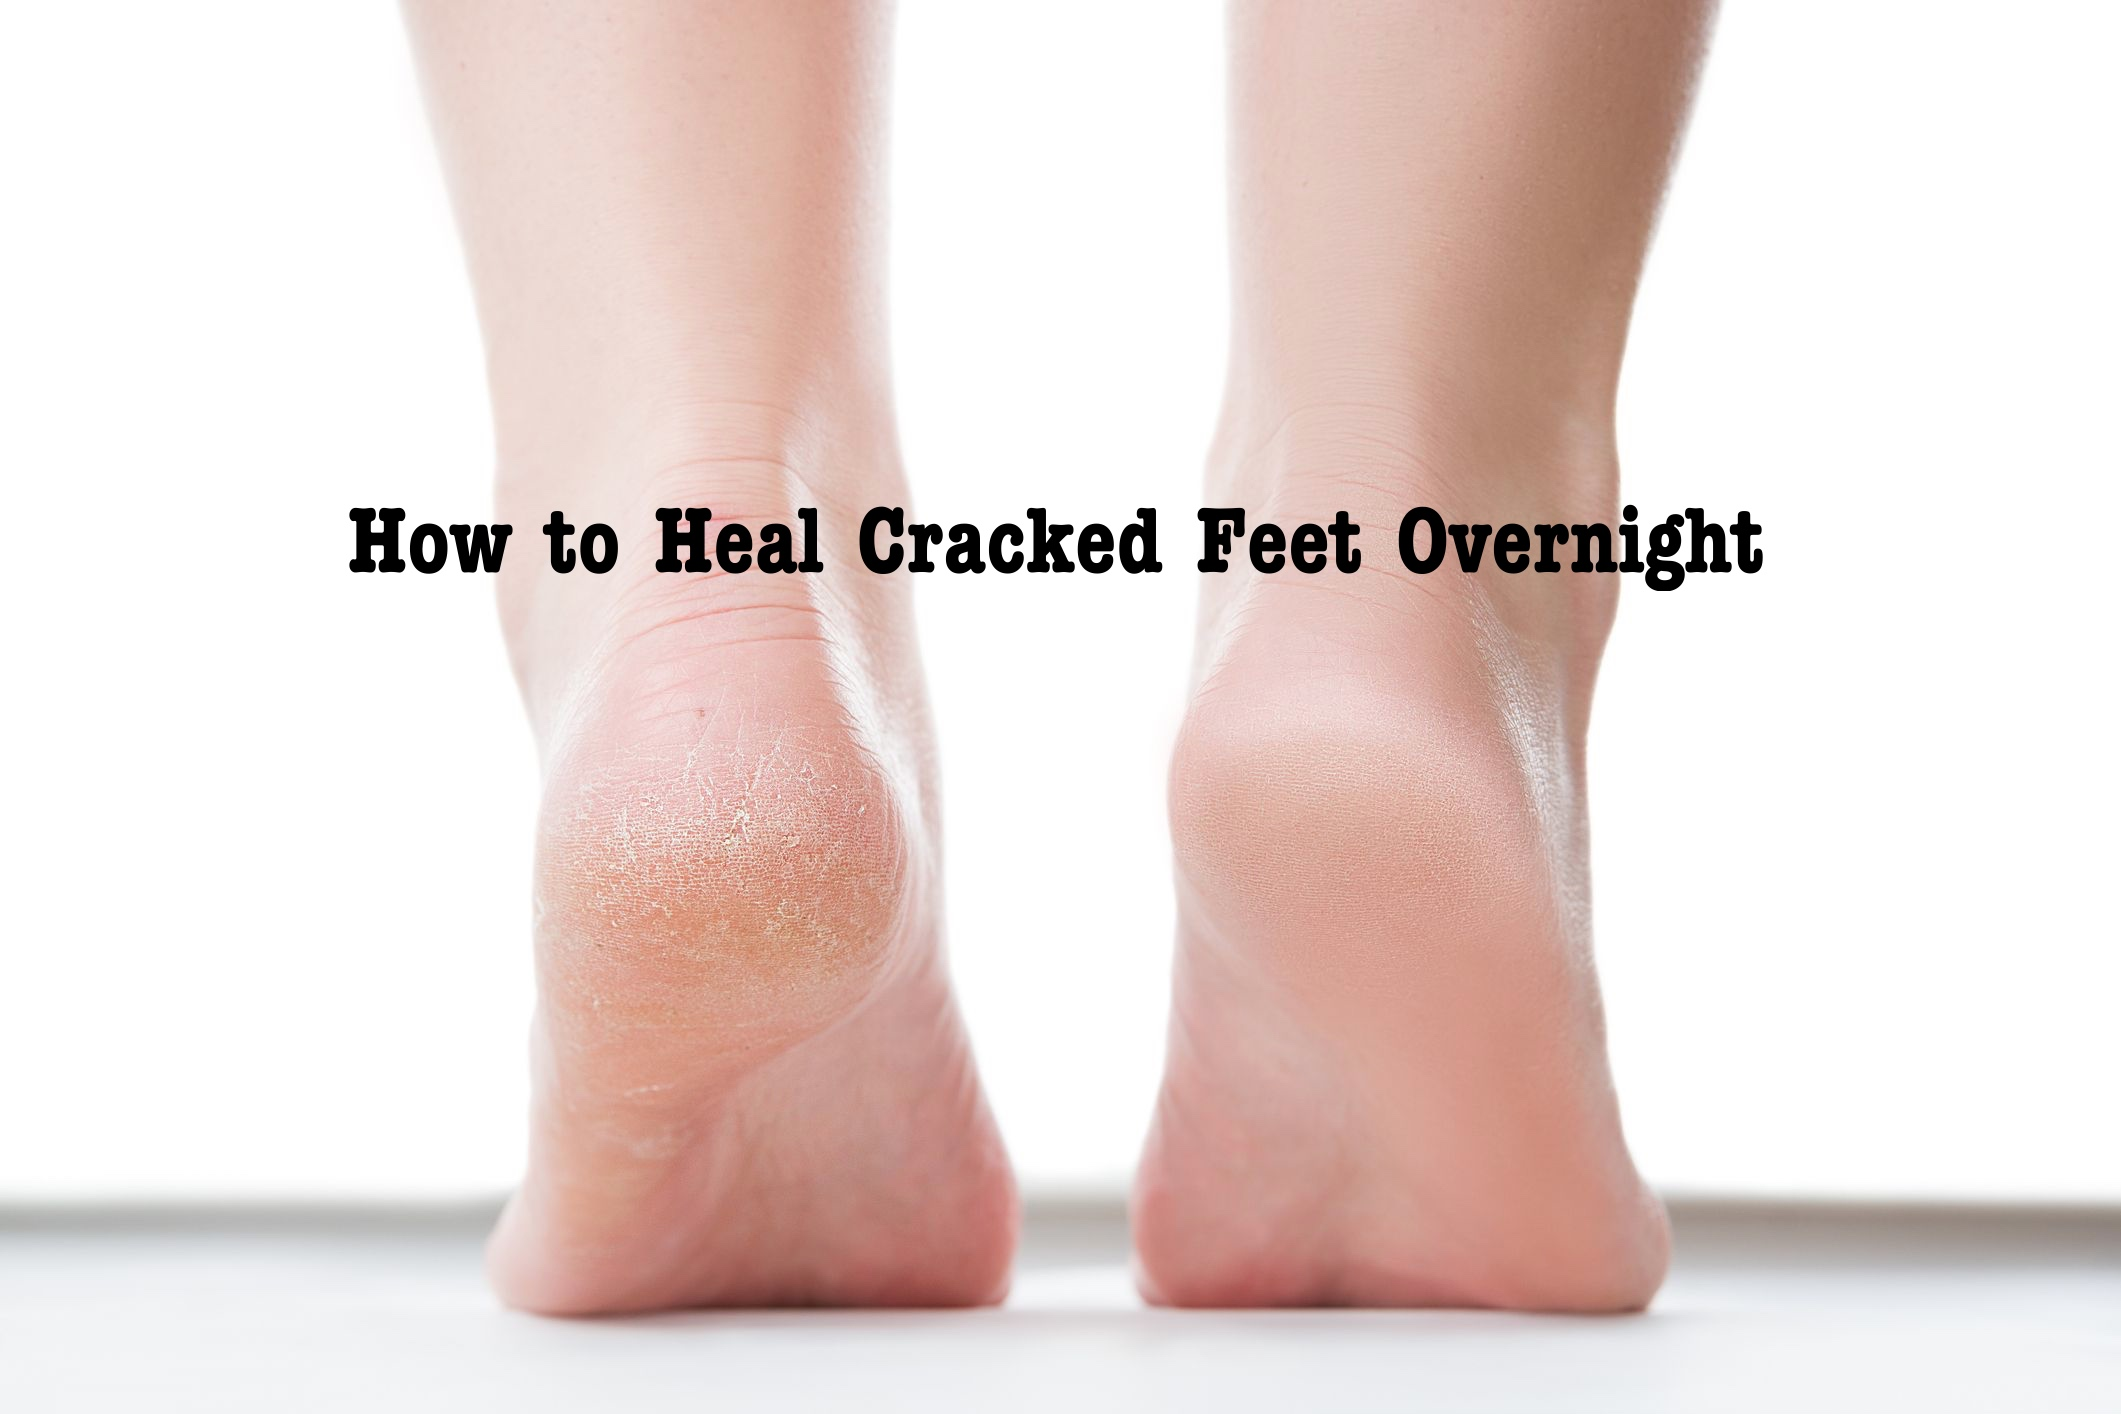 How to Heal Cracked Feet Overnight